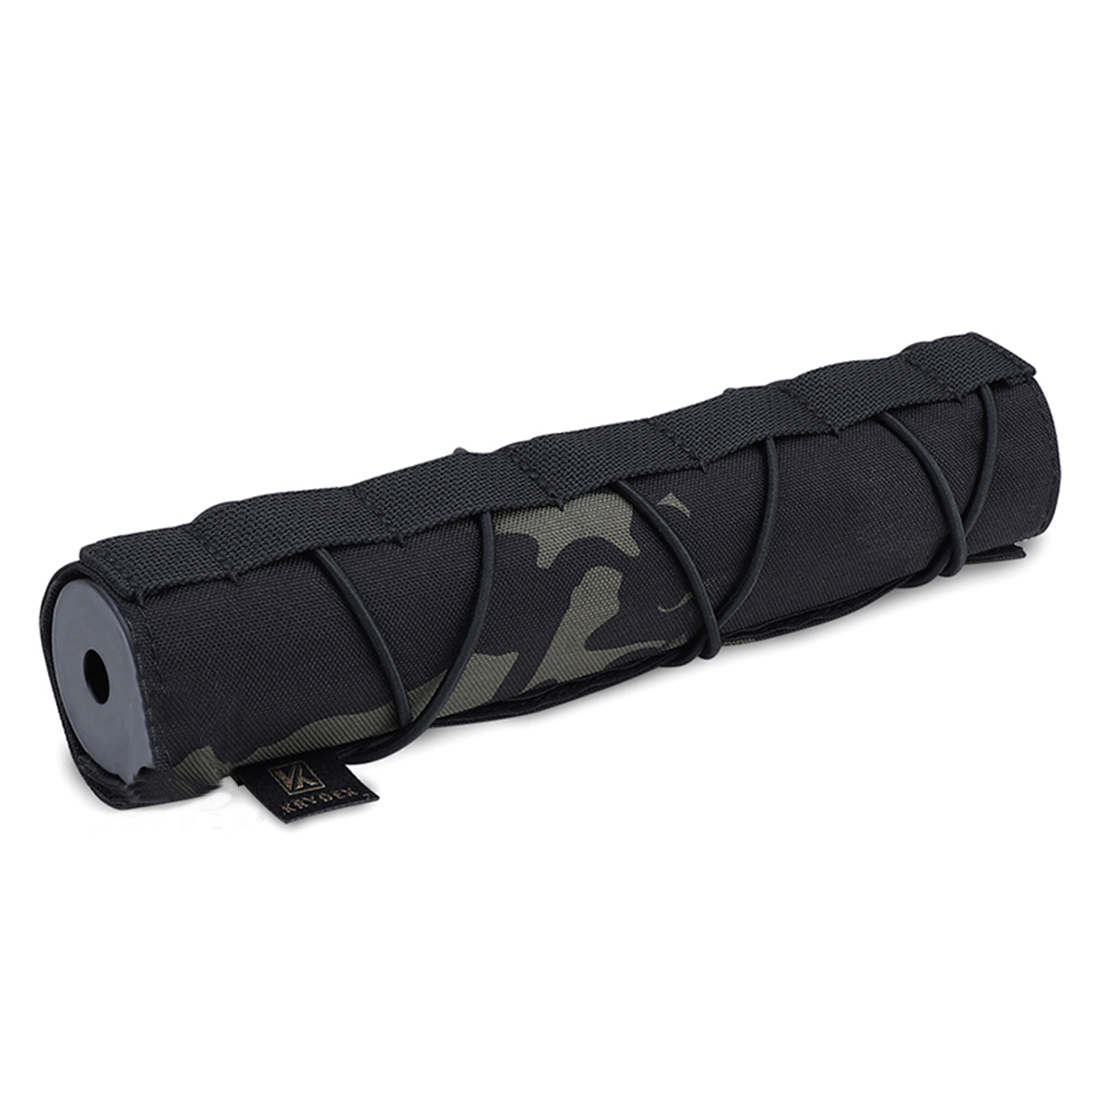 Krydex 22cm Suppressor Anti-scratch Cover Water Gel Beads Tactical Silencer Cover - MCBK/MC/RG/CB/BK